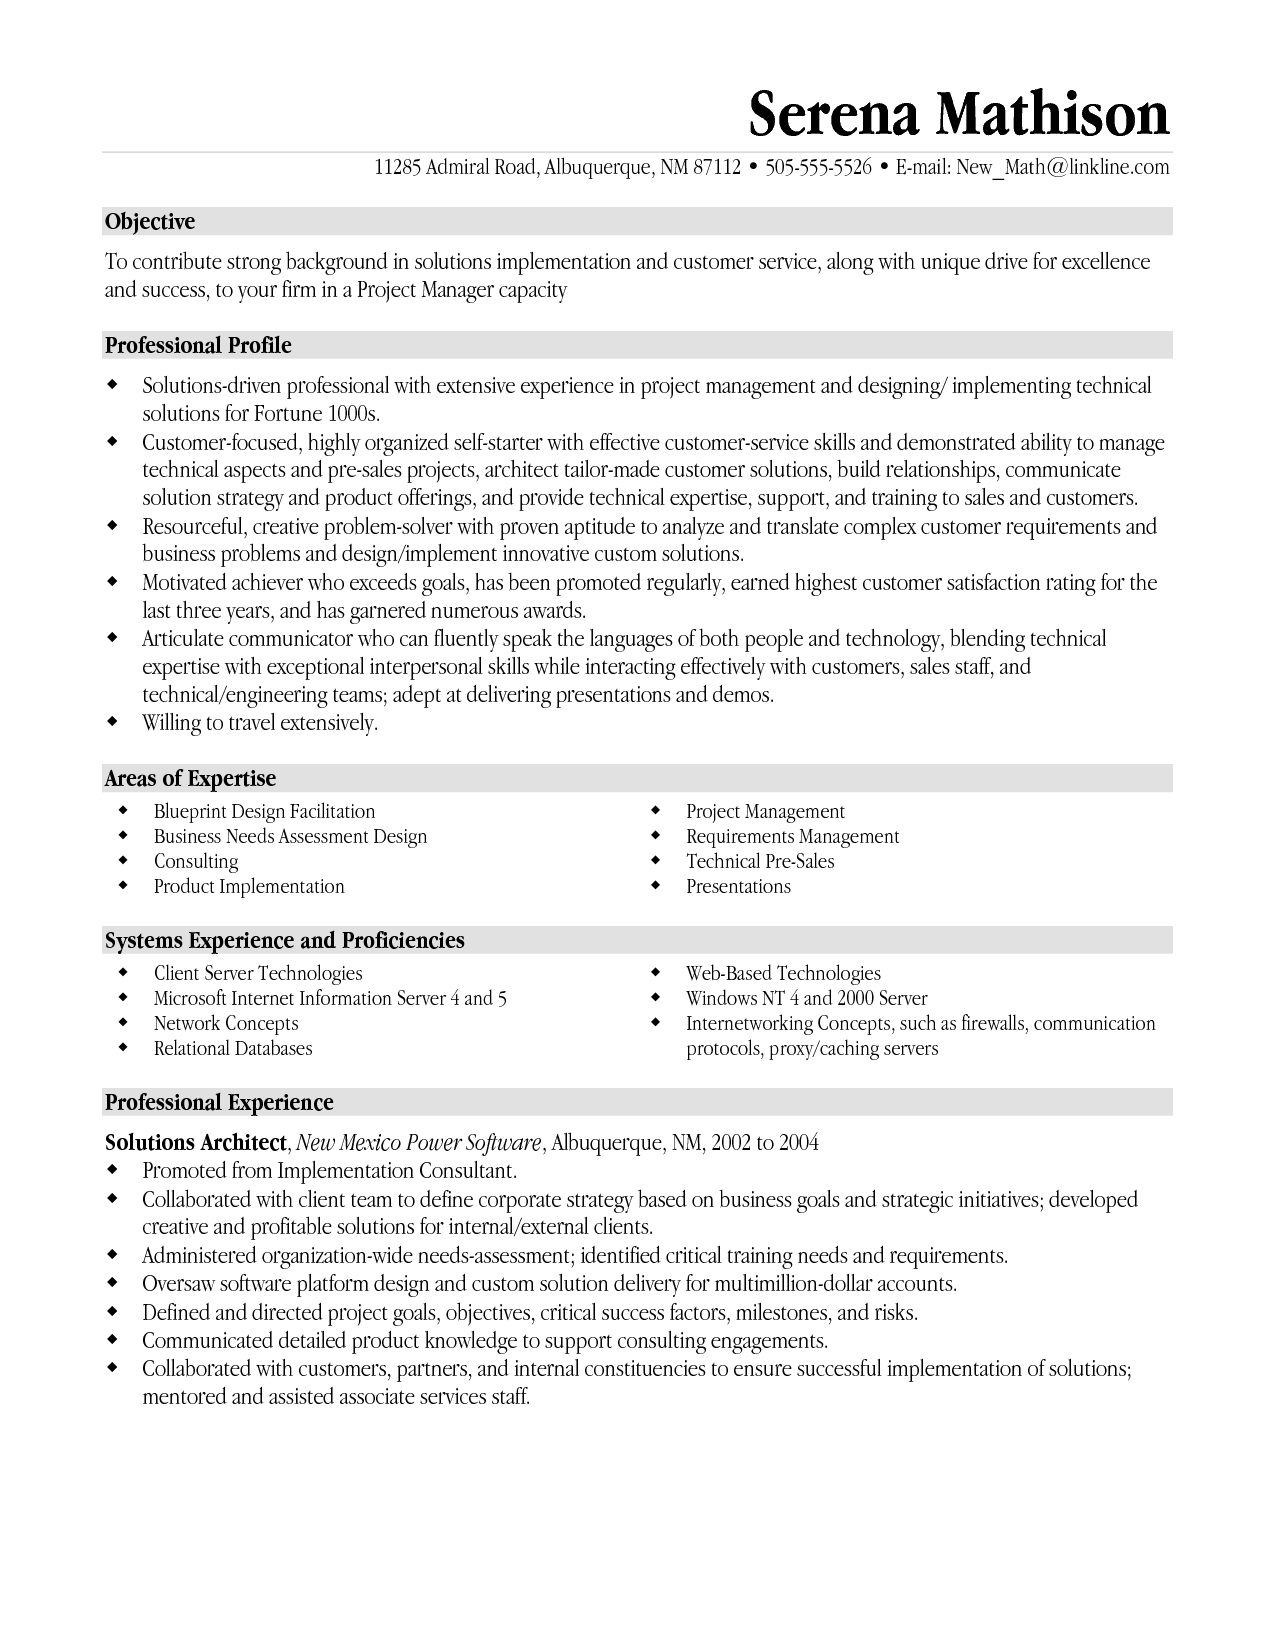 Resume Templates Project Manager  Project Management Resume